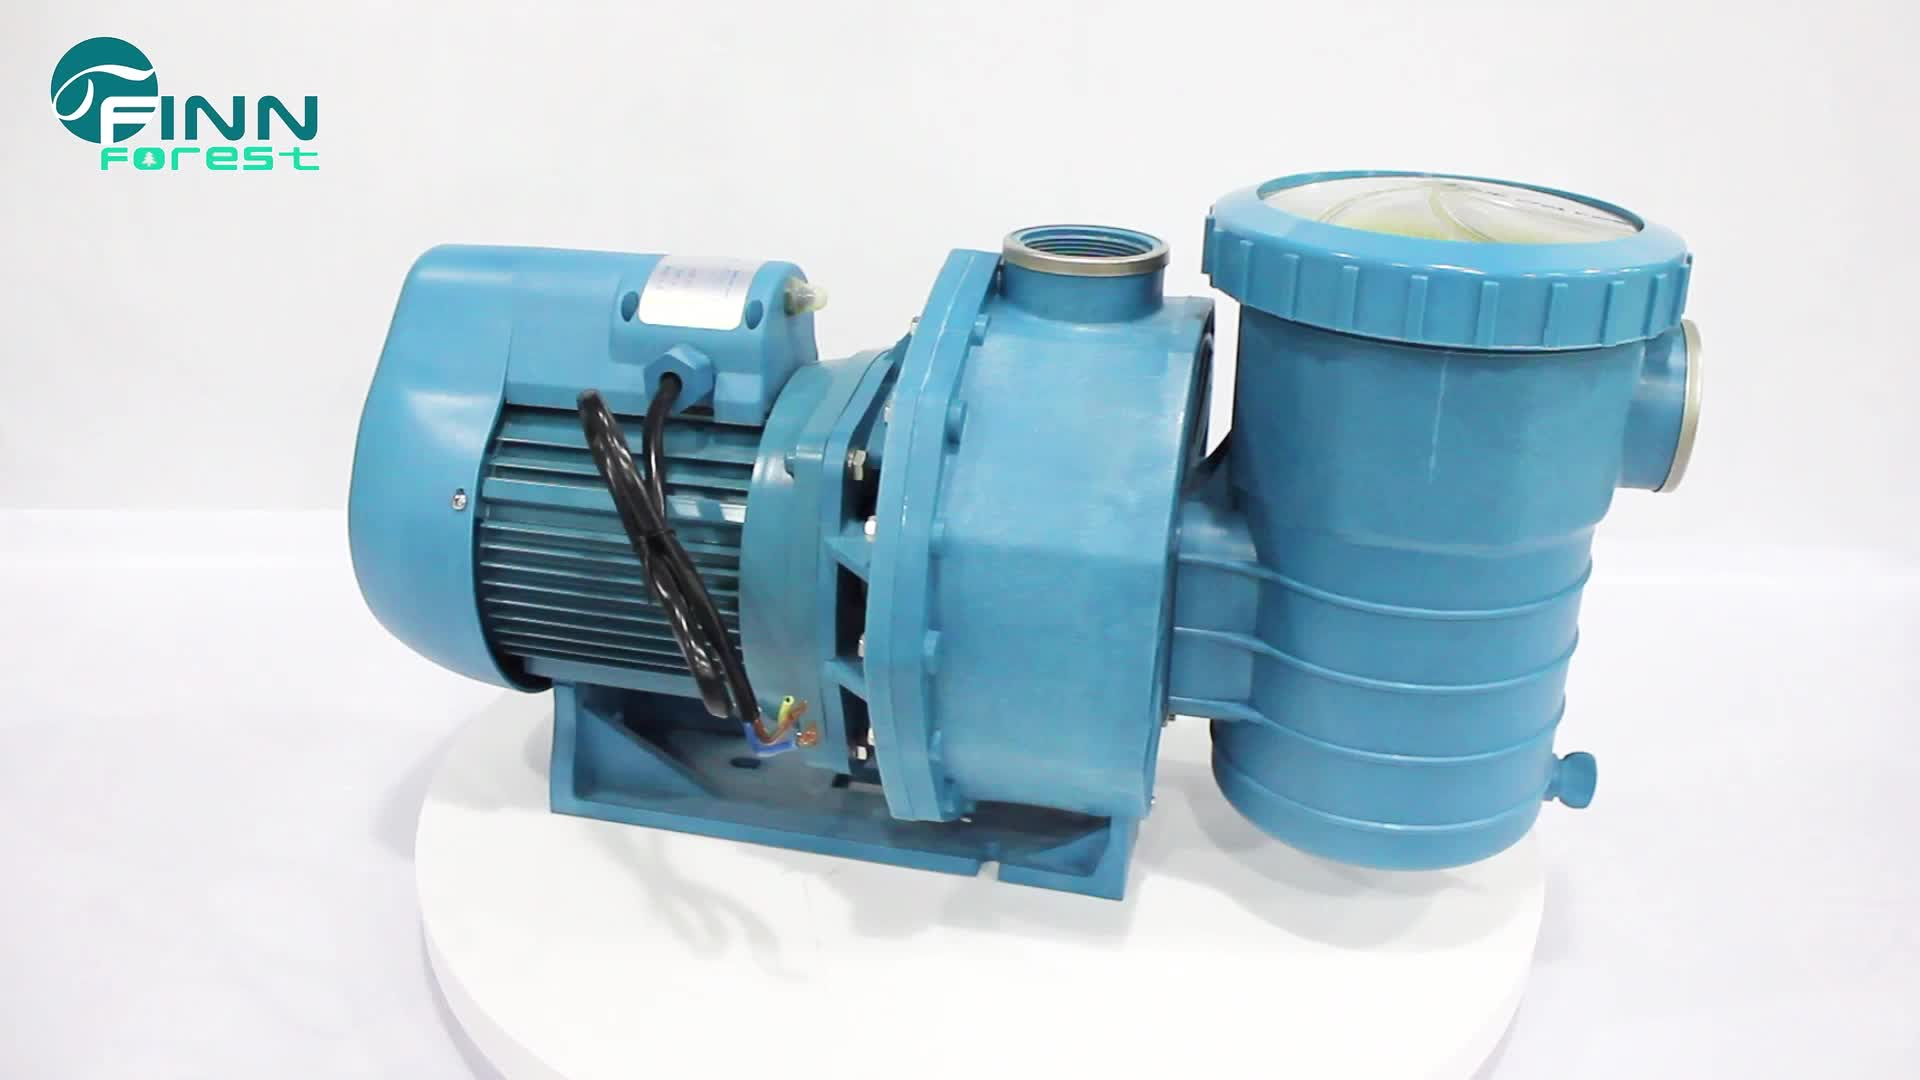 Inverter Water Pump For Circulation And Filtration Small Spa Swimming Pool Filtration Pump